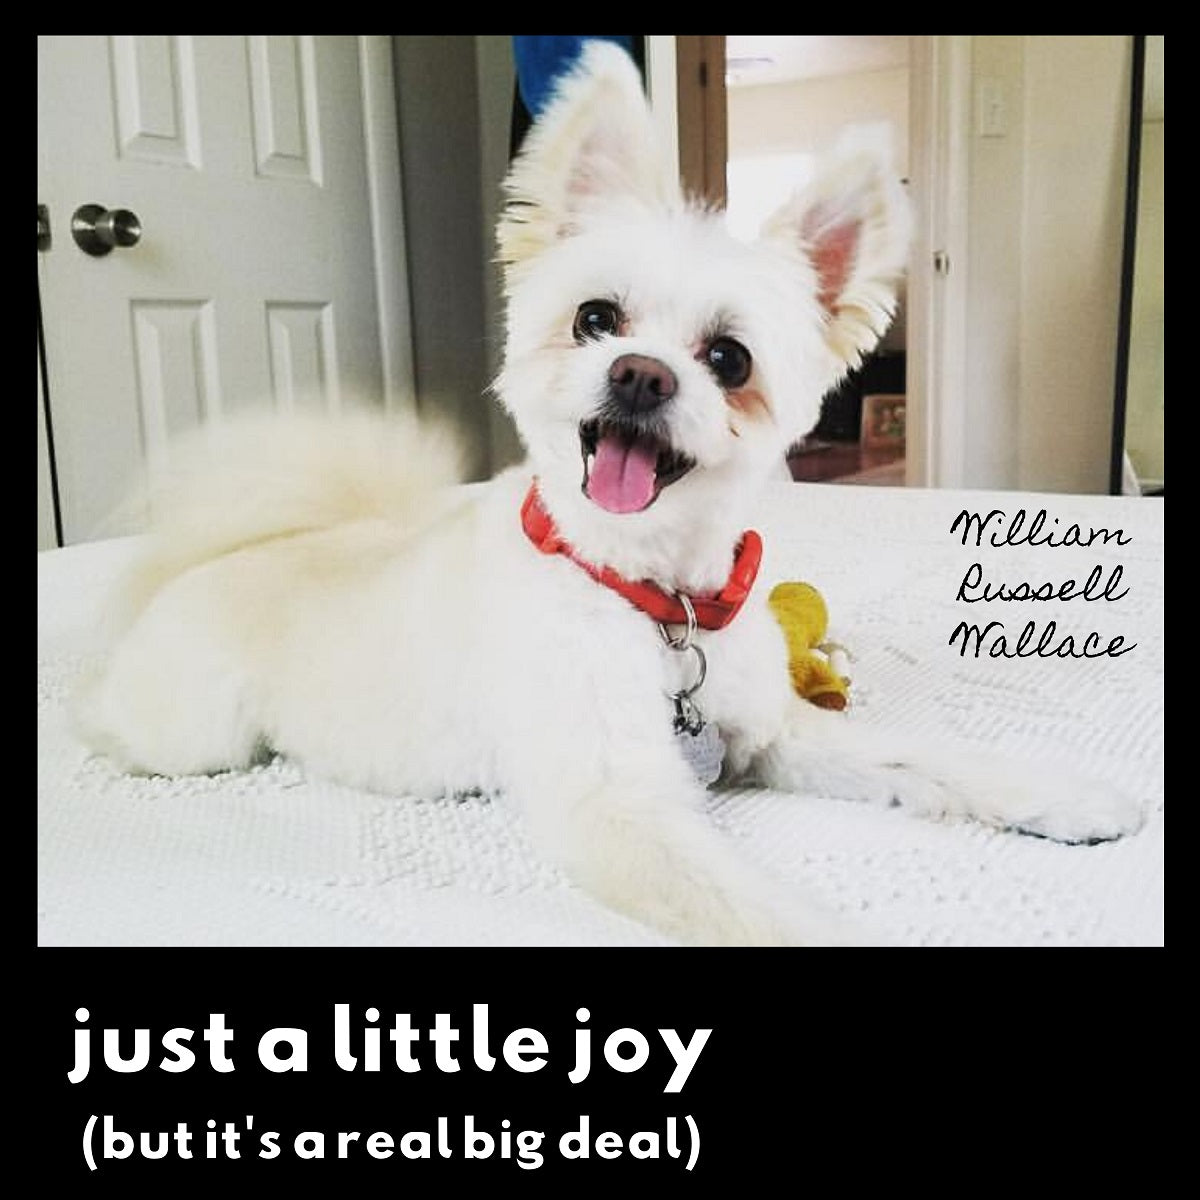 Review: William Russell Wallace – 'Just A Little Joy (But It's A Real Big Deal)'